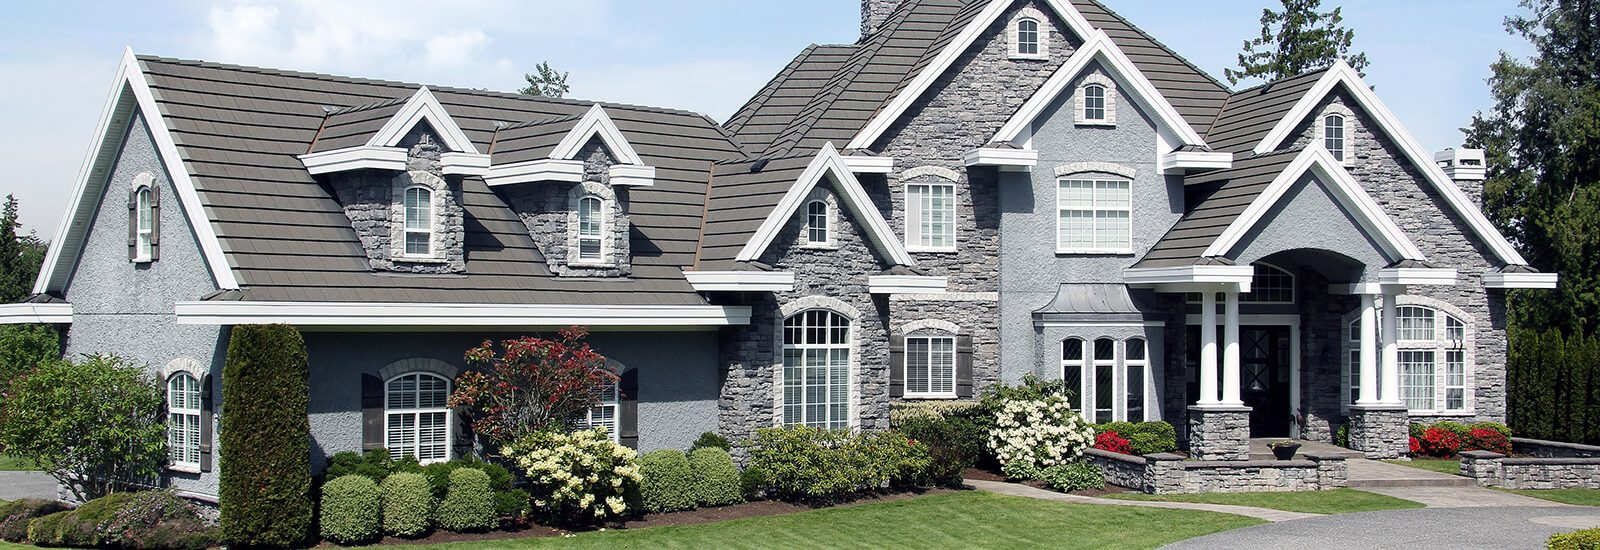 Roofing Company Northern Va Home Noble Roofing